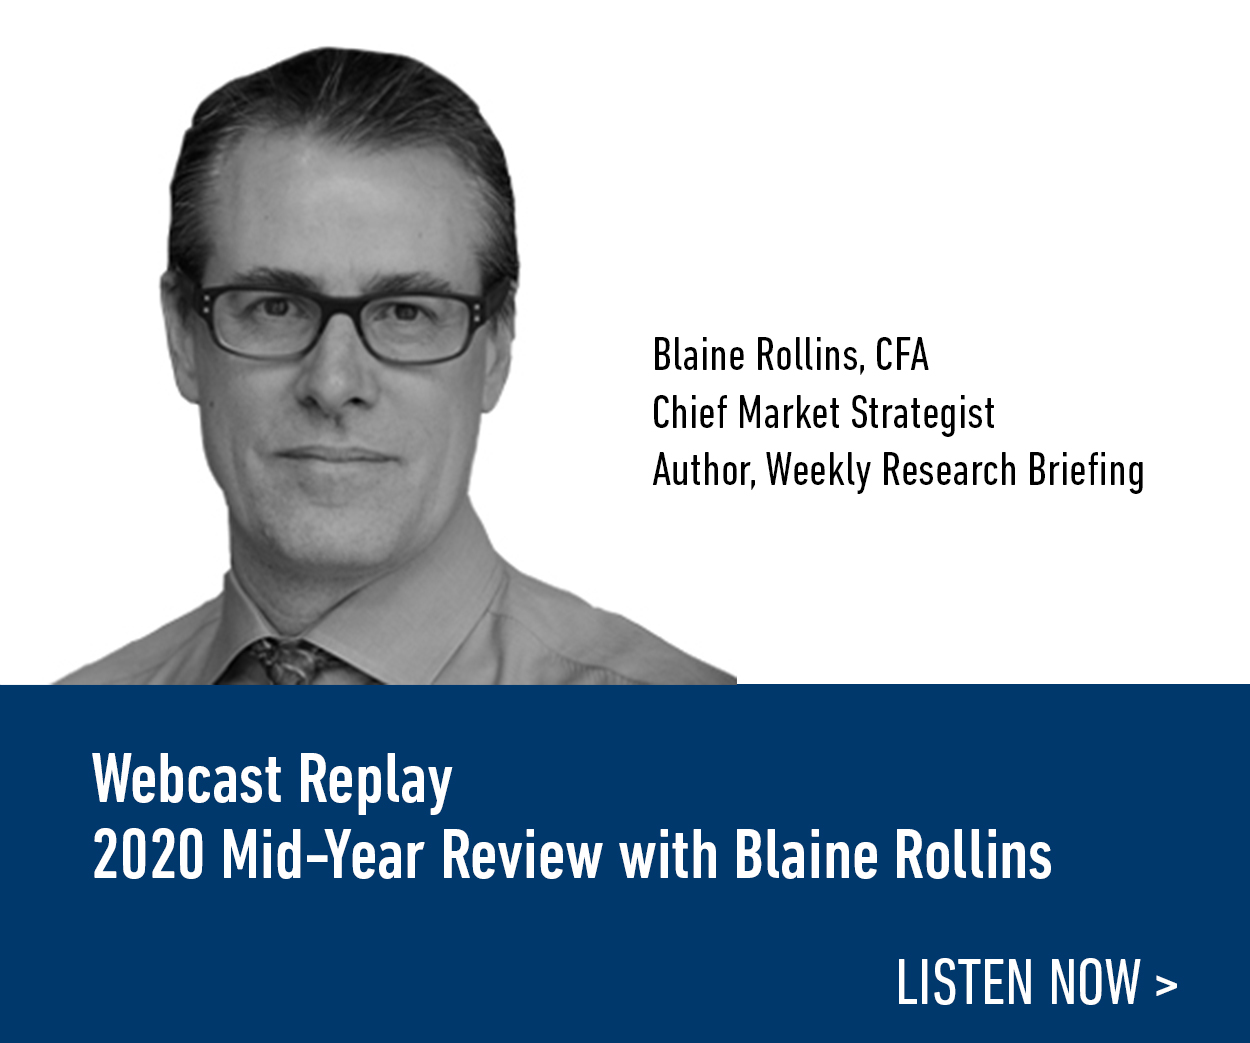 Webcast Replay: 2020 Mid-Year Review with Blaine Rollins